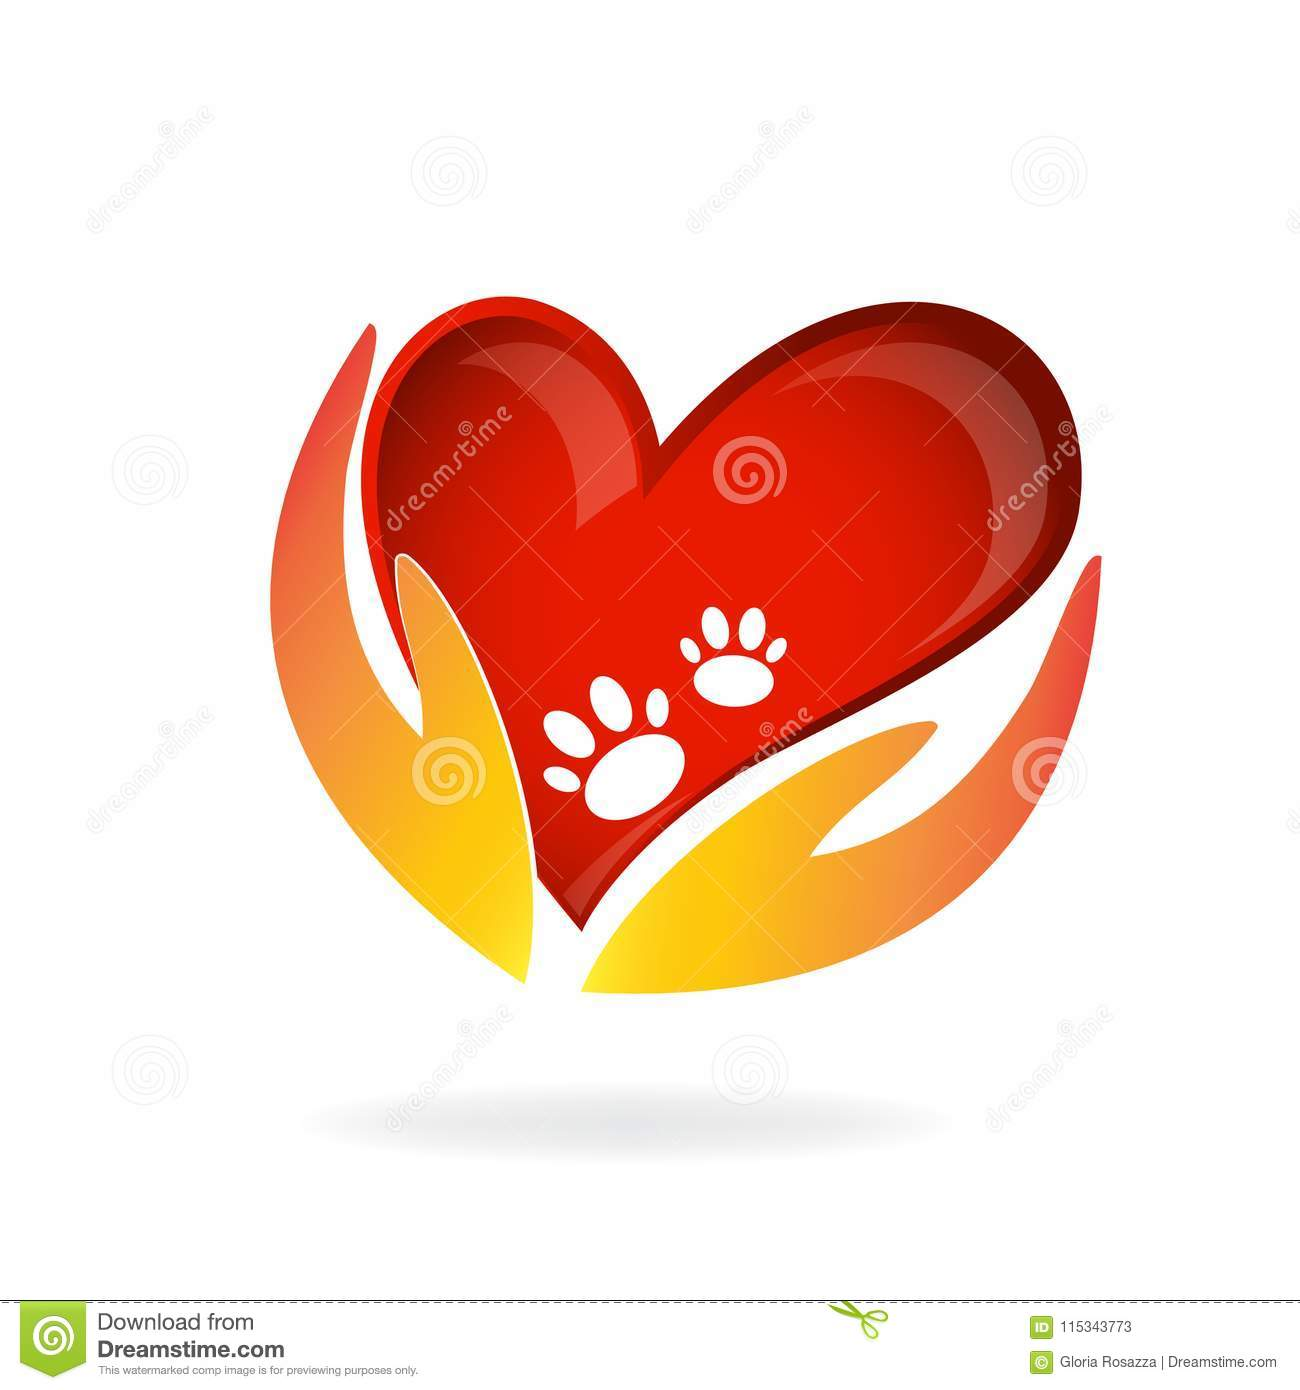 Animal Lovers Hands Love Heart And Paws Design Emblem Logo Image